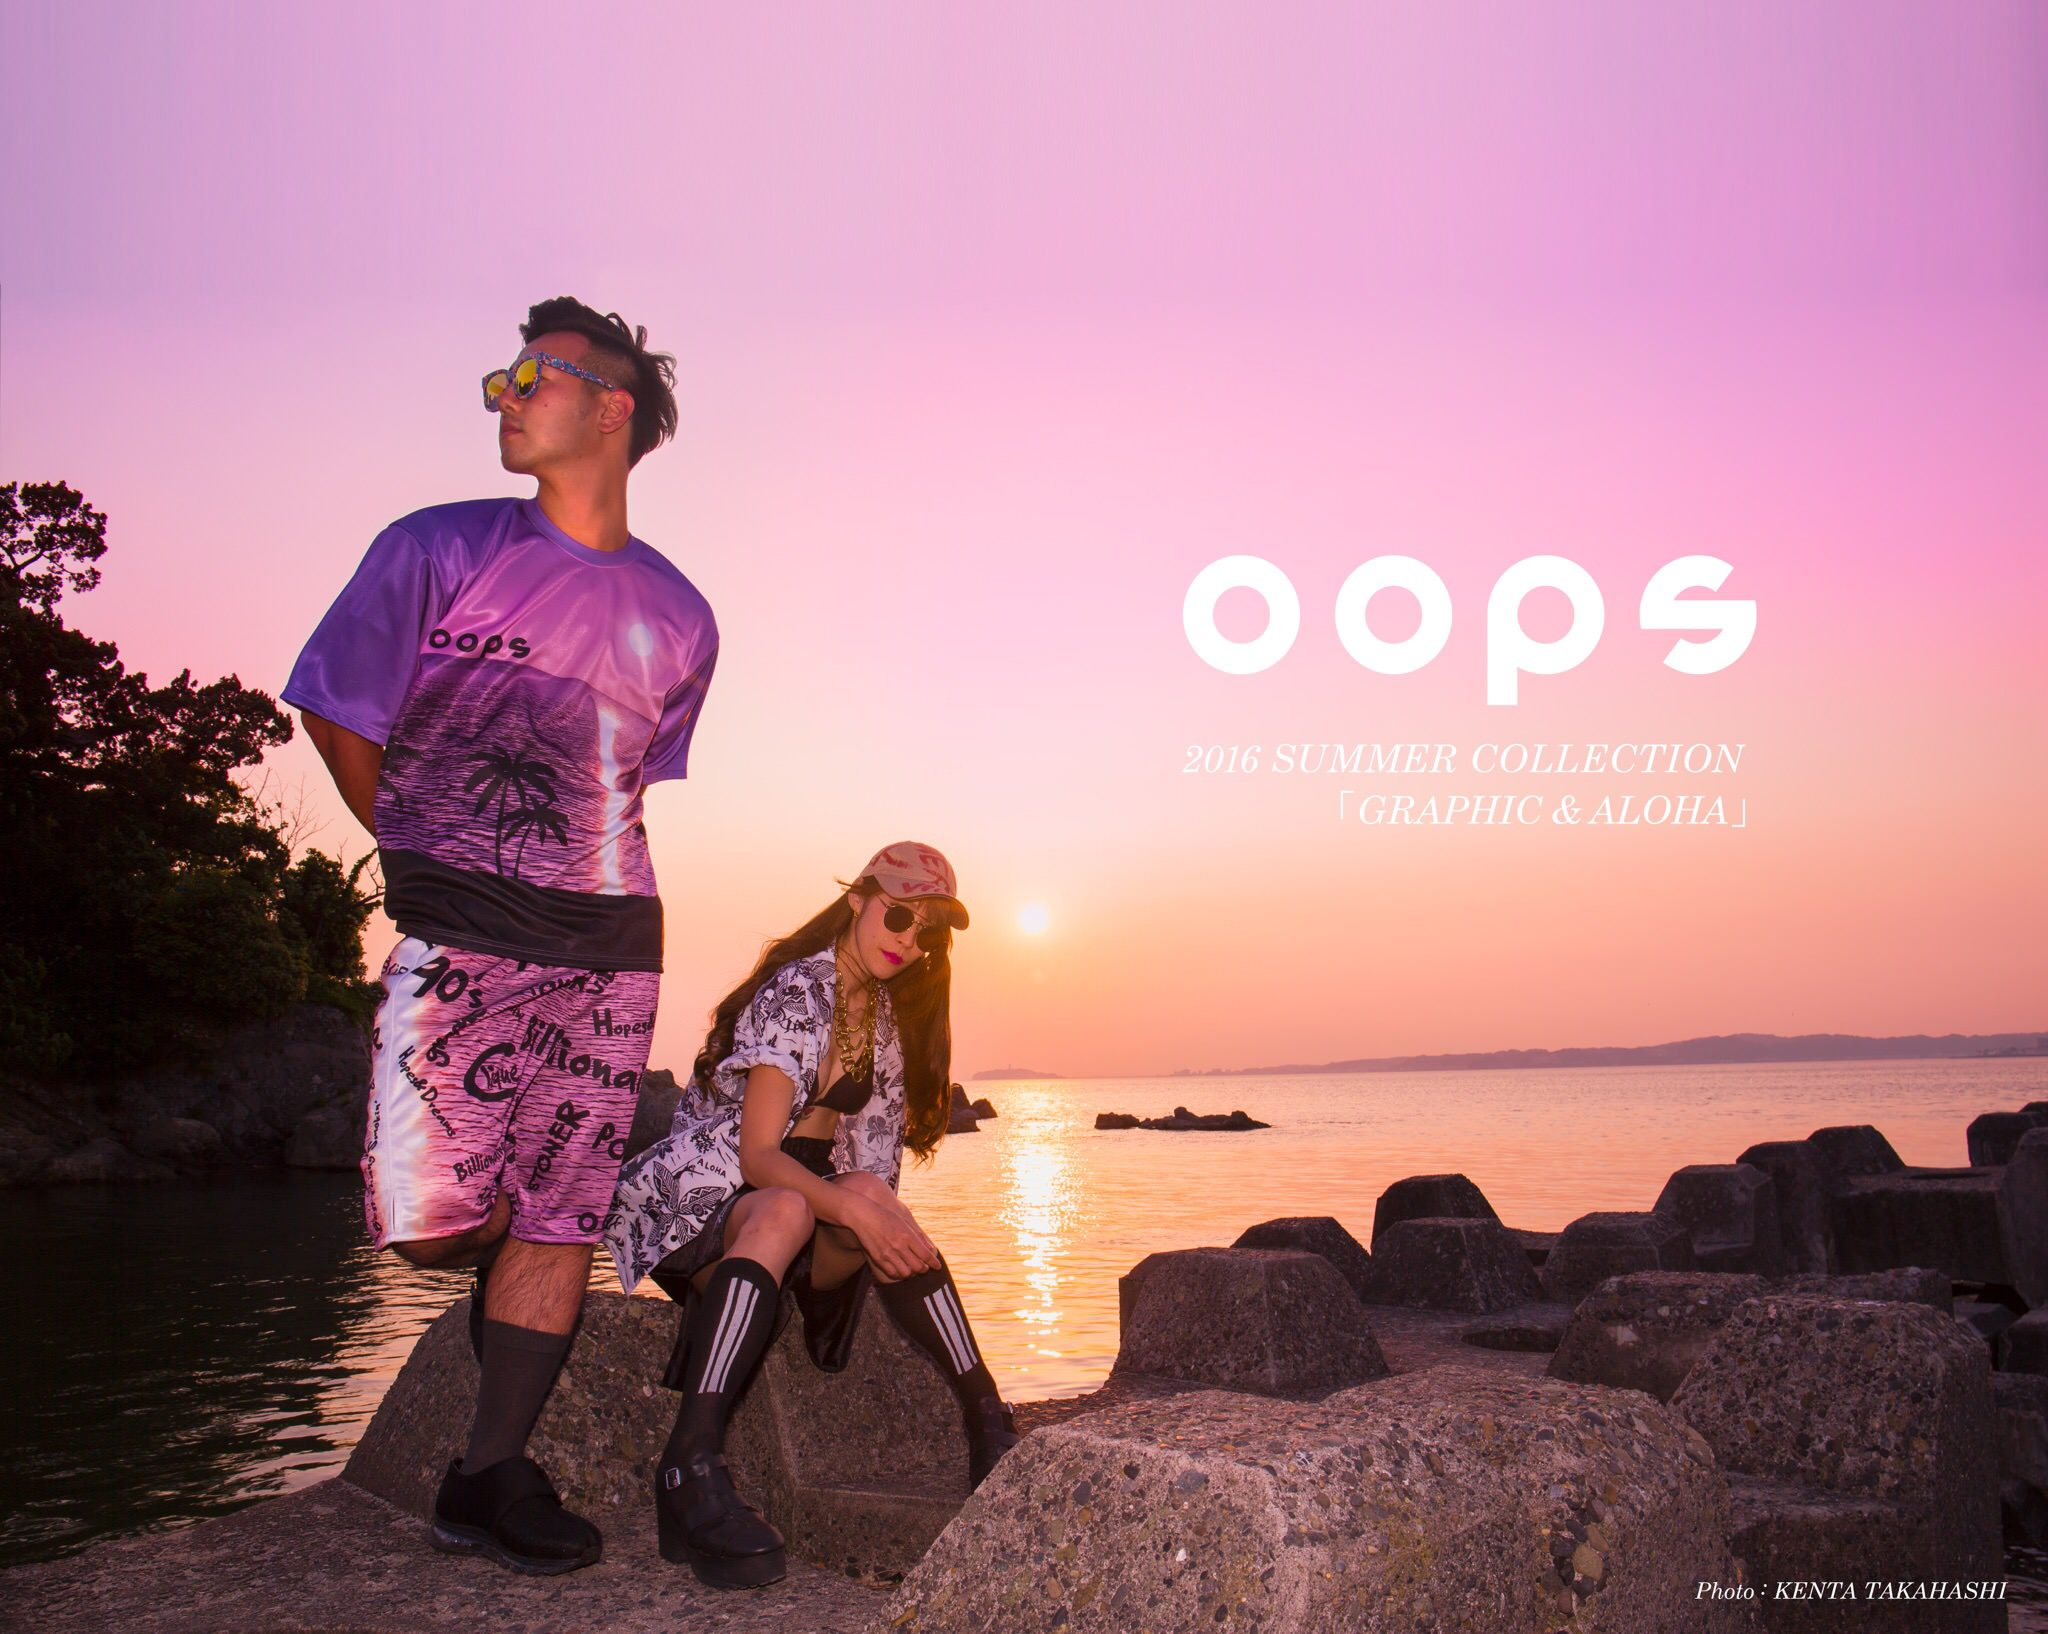 oops 2016 SUMMER COLLECTION 【GRAPHIC & ALOHA】